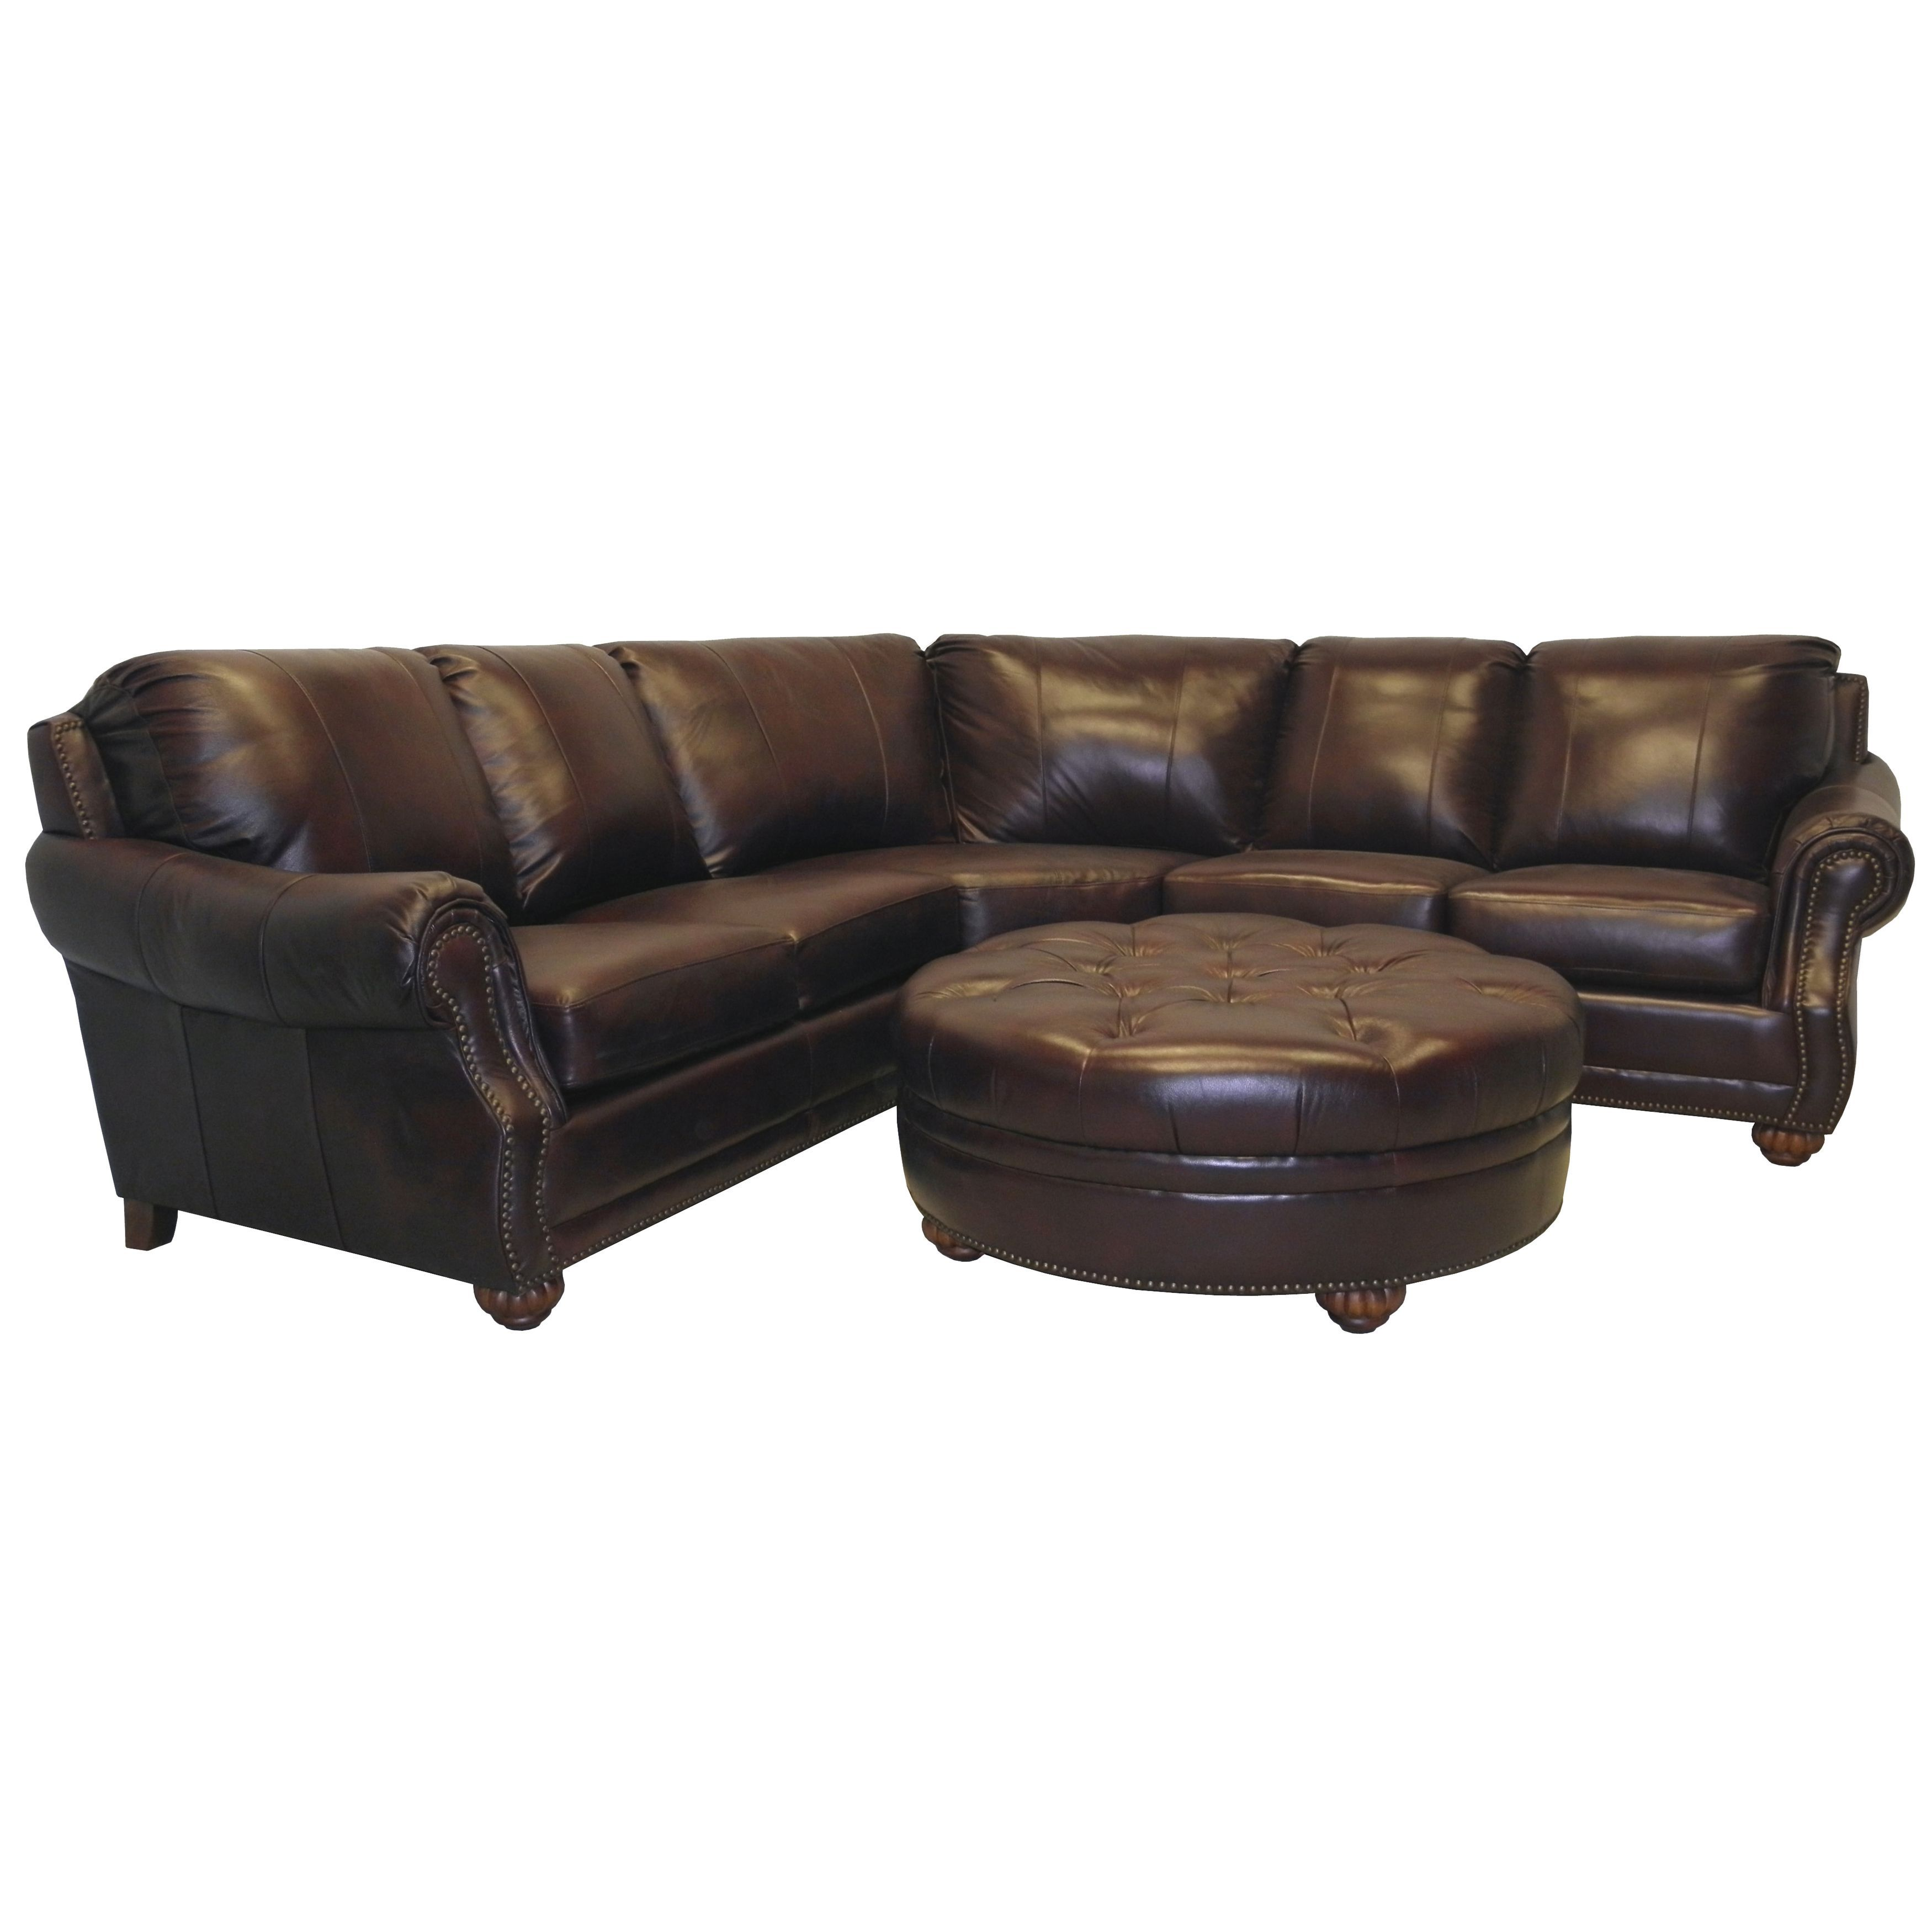 El Ran s Rain Sectional is the most popular motion furniture in